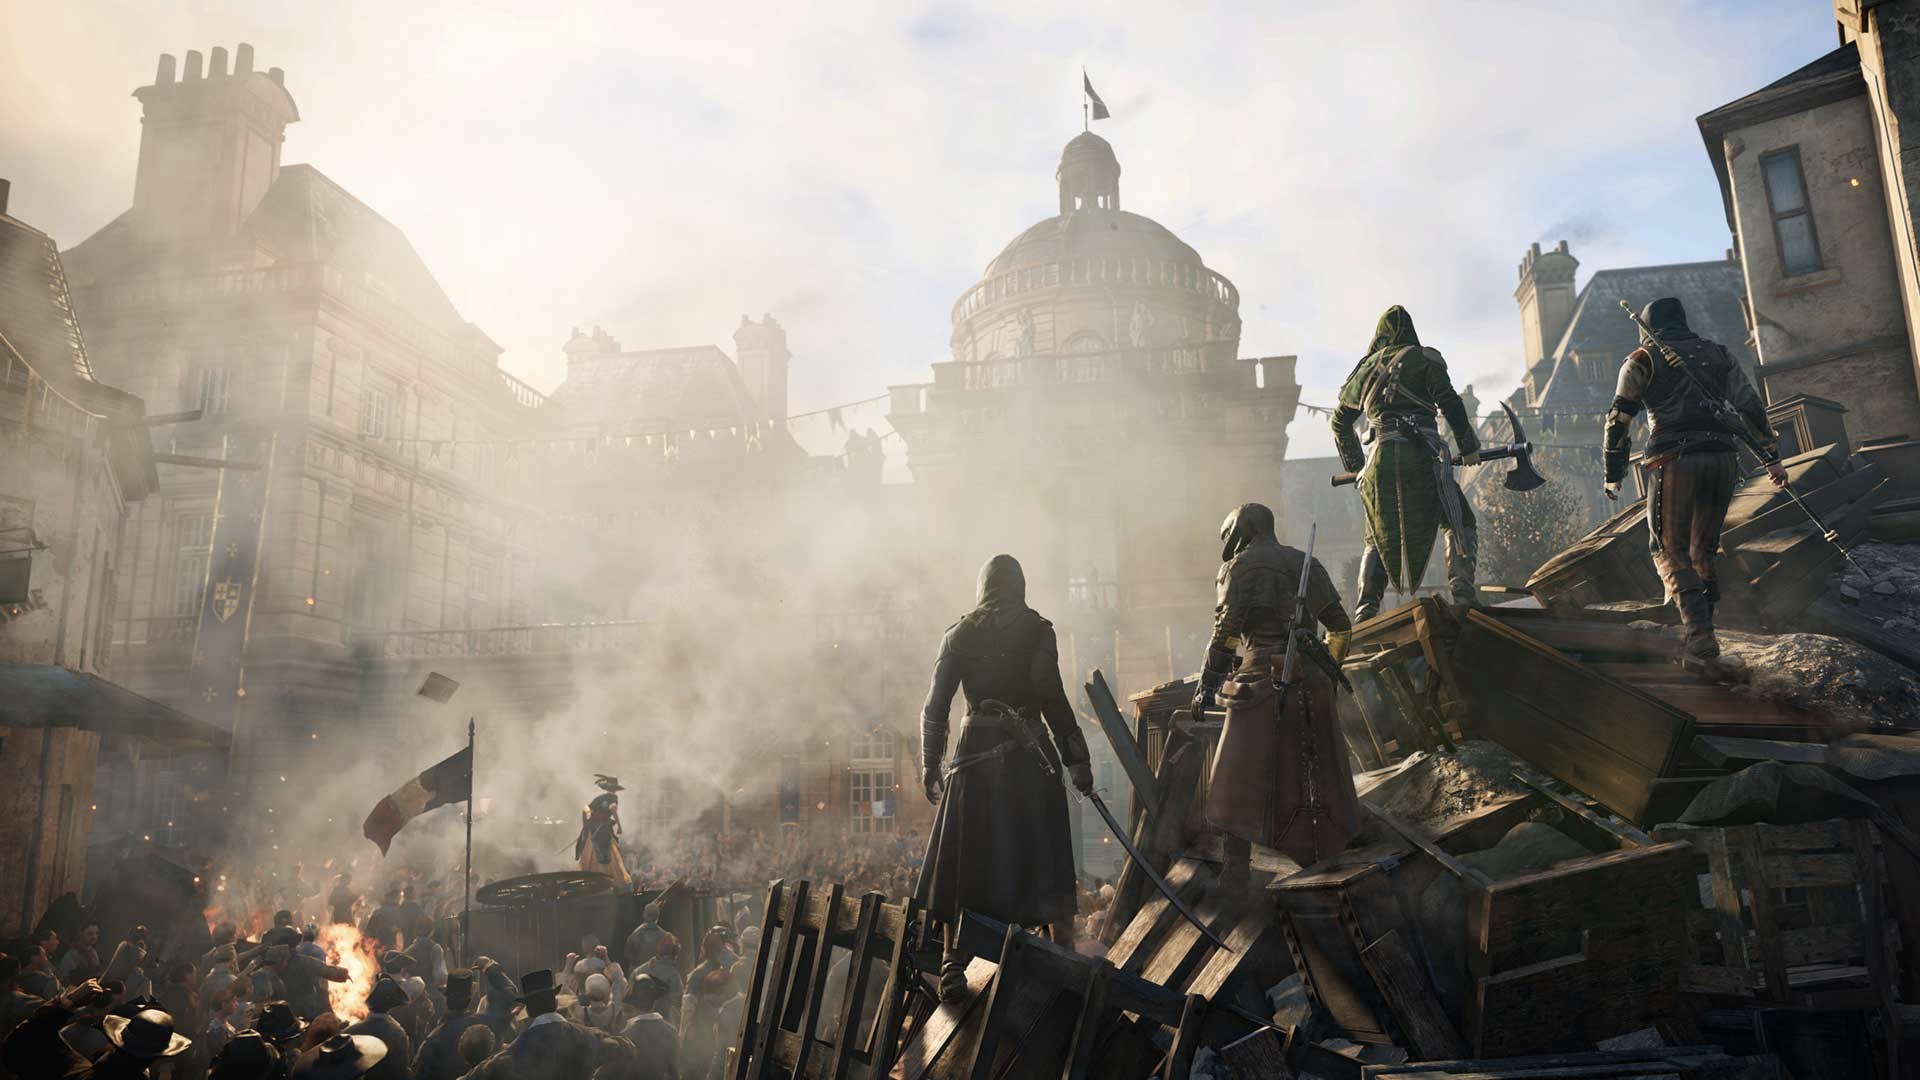 Assassin's Creed Unity's big patch is rolling out now on consoles